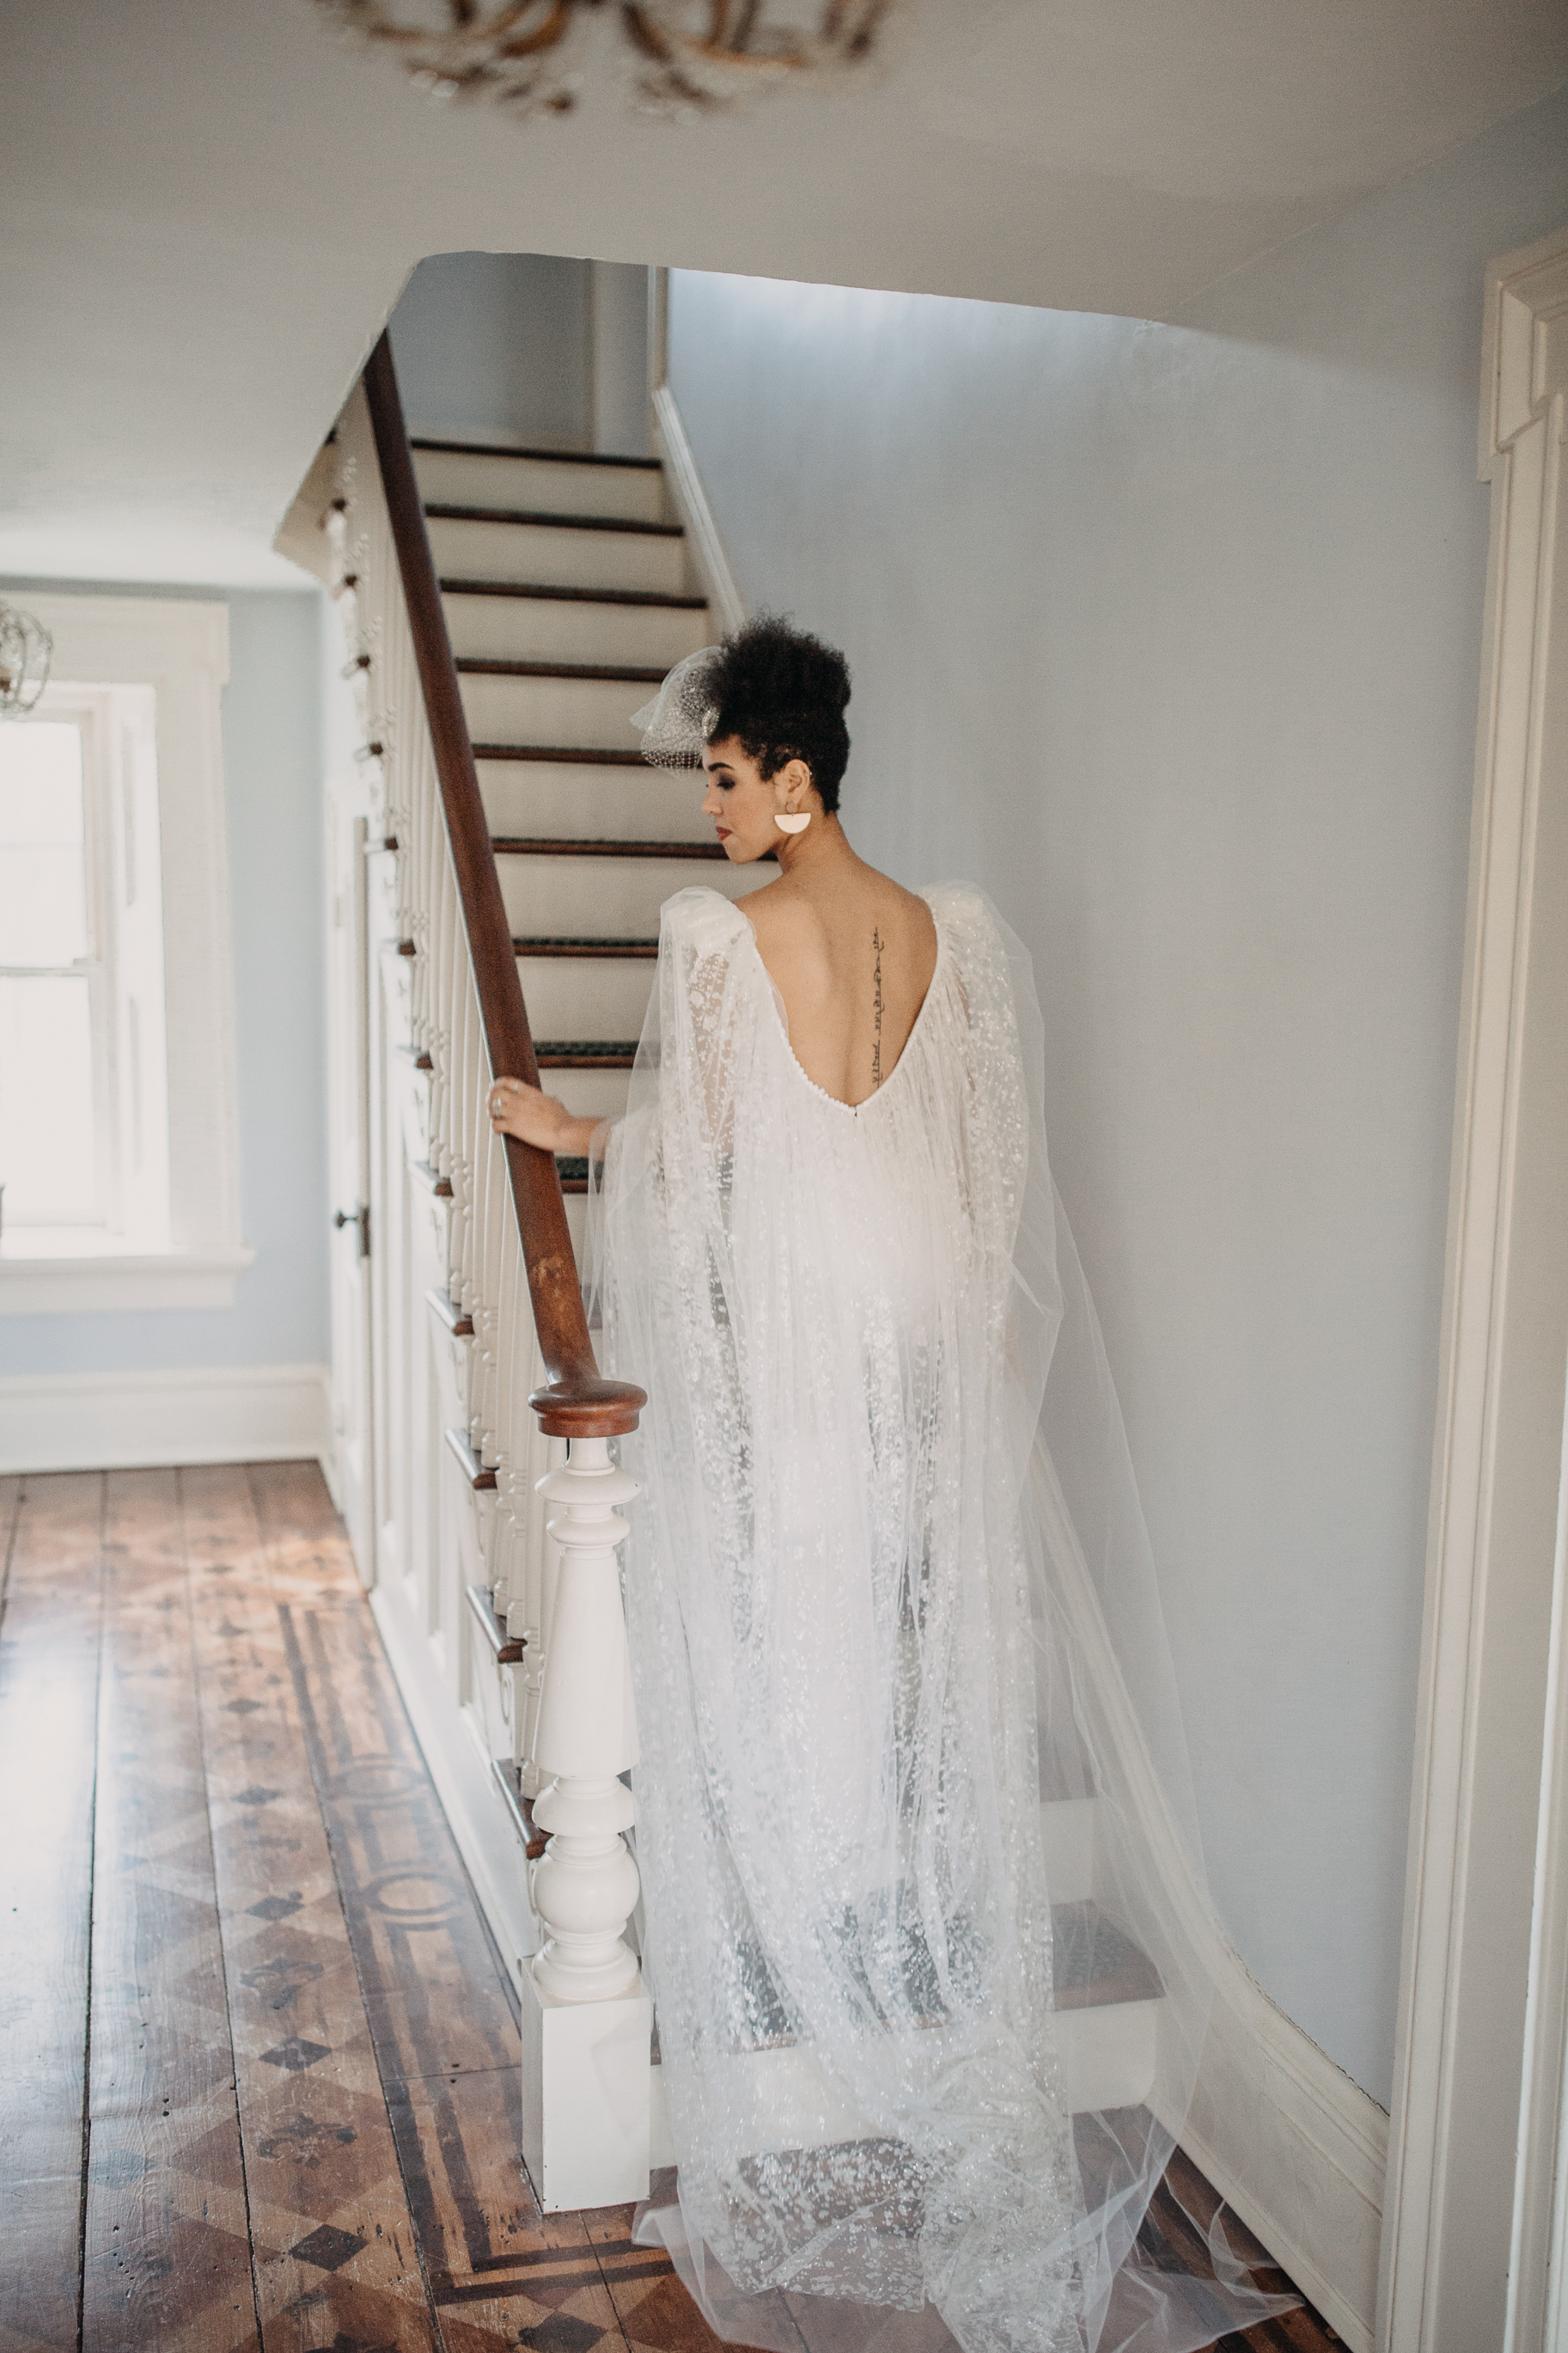 Pant suit wedding gown with a cape from Dany Mizarachi Bridal - Pearl Weddings & Events